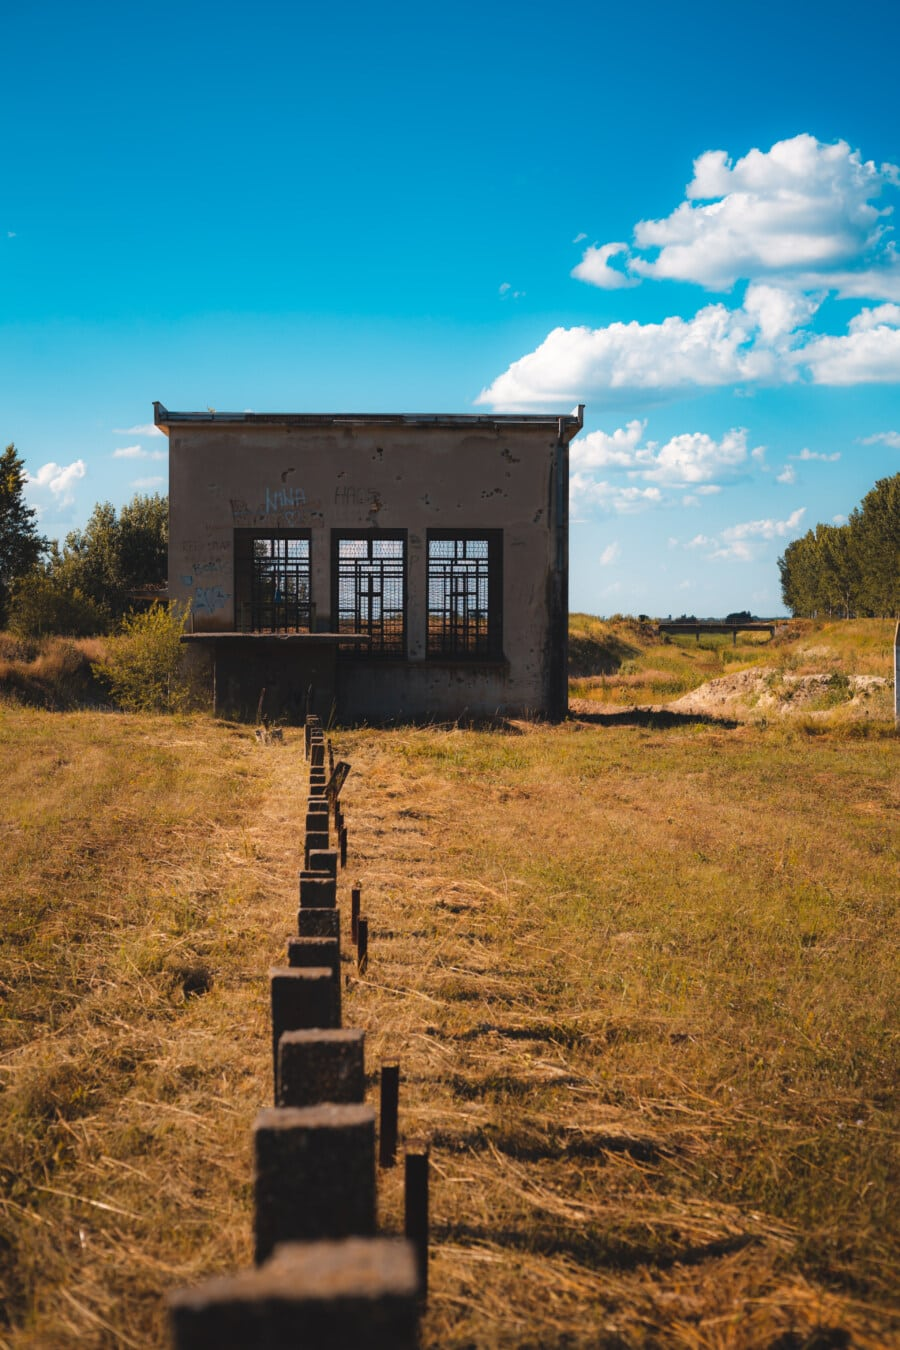 building, abandoned, decay, rural, landscape, old, architecture, grass, outdoors, derelict